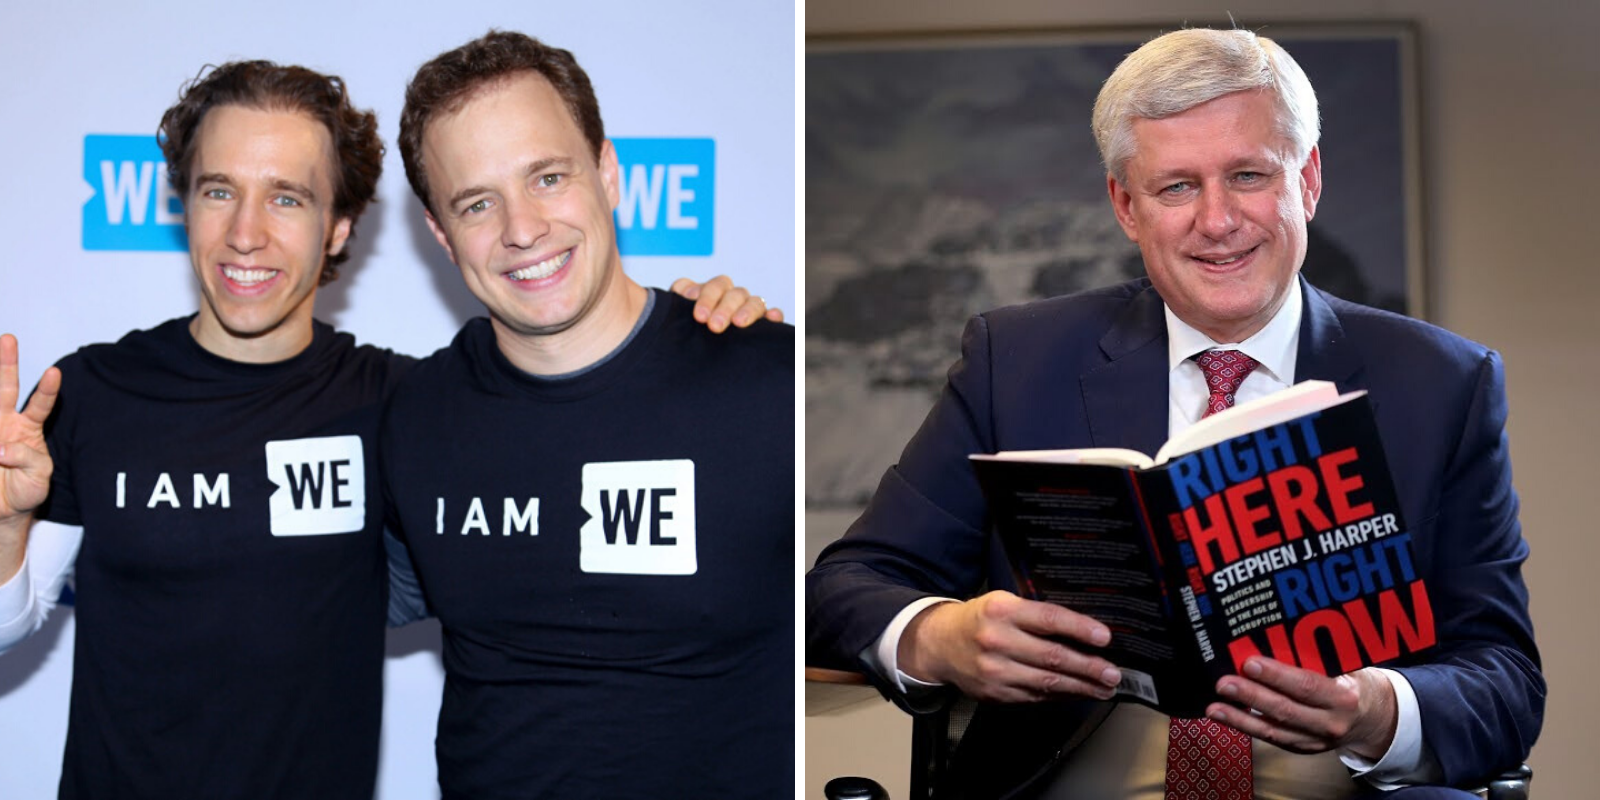 WE Charity founders attacked Prime Minister Harper on national television